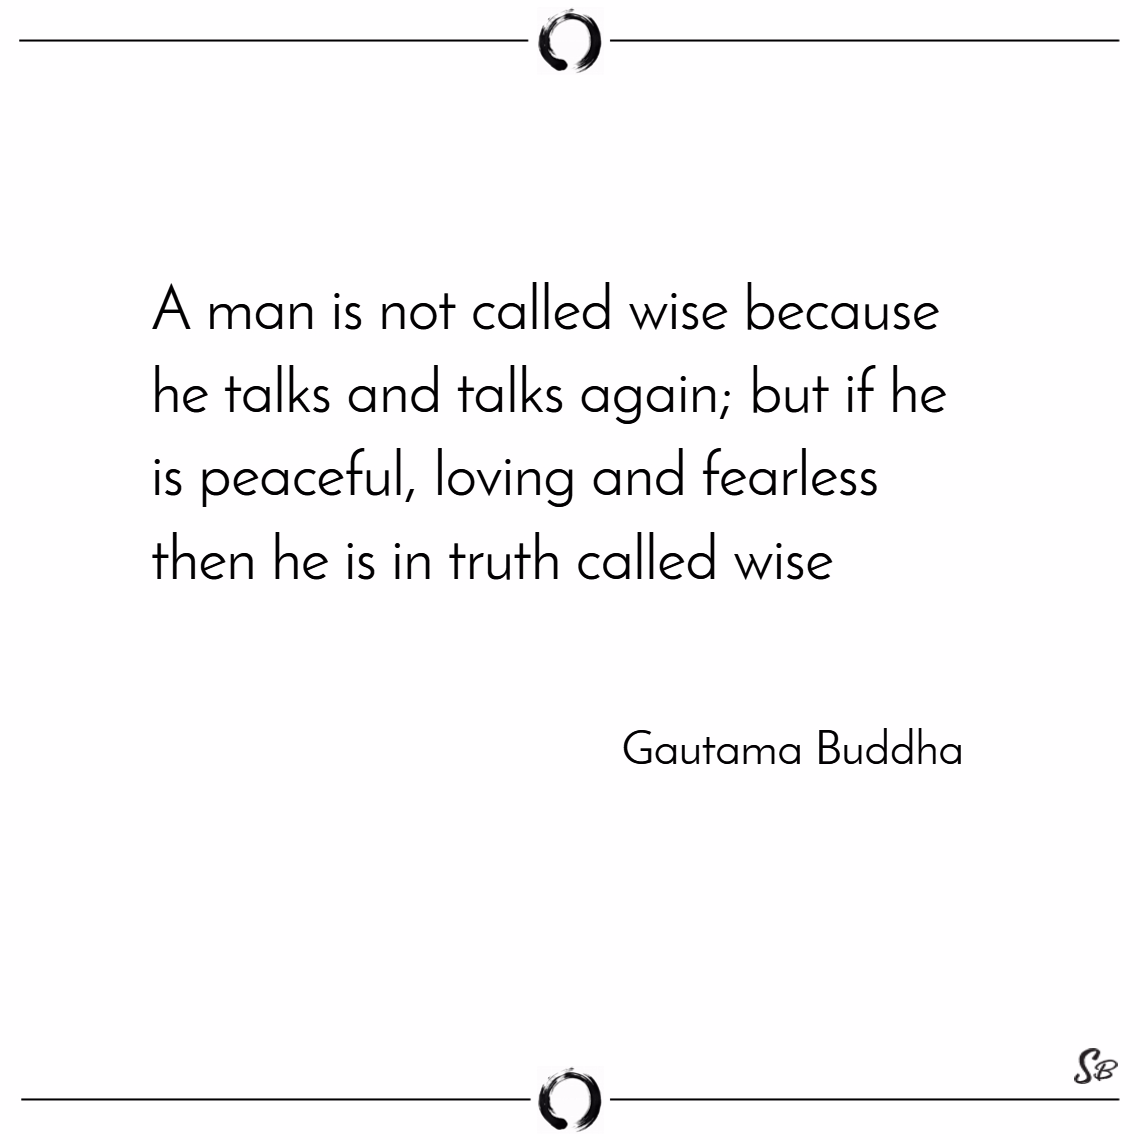 A man is not called wise because he talks and talks again; but if he is peaceful, loving and fearless then he is in truth called wise. – gautama buddha